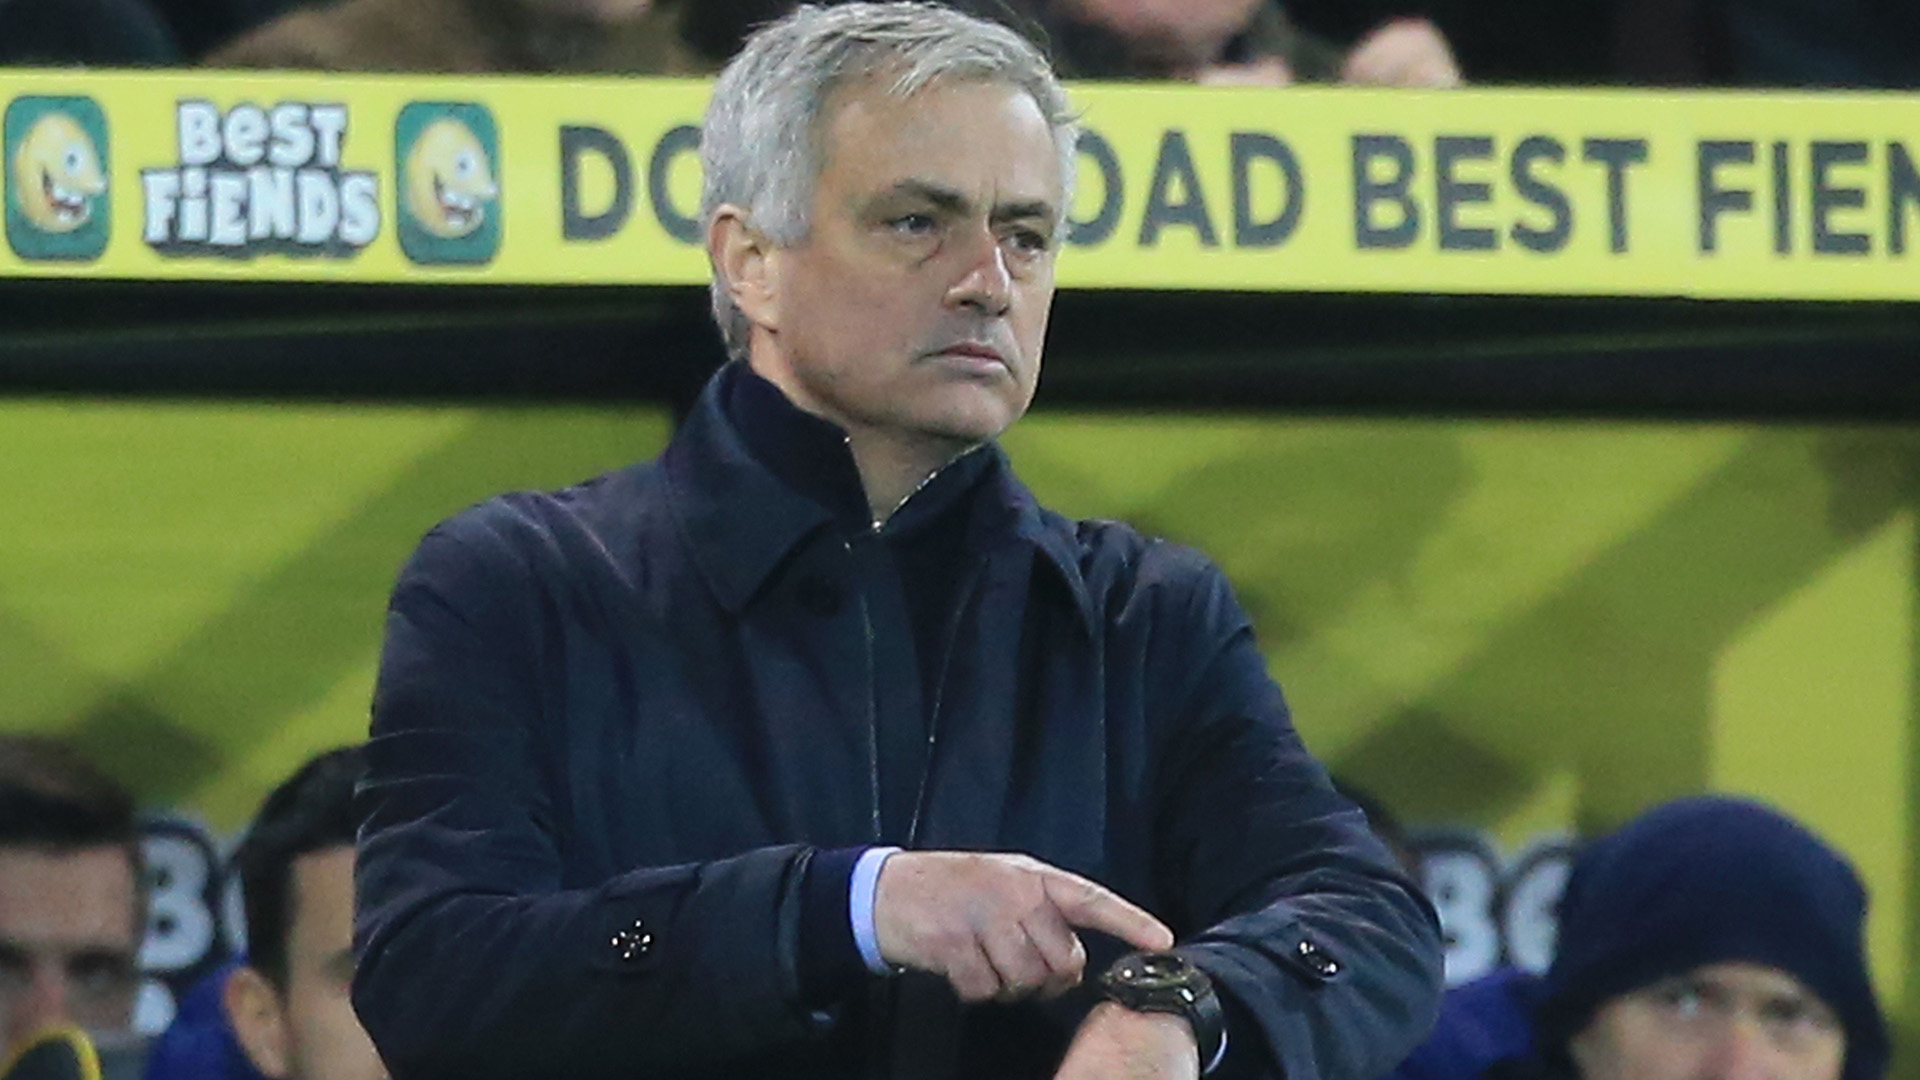 Mourinho unhappy with media as he denies claims he wanted delay to Premier League restart